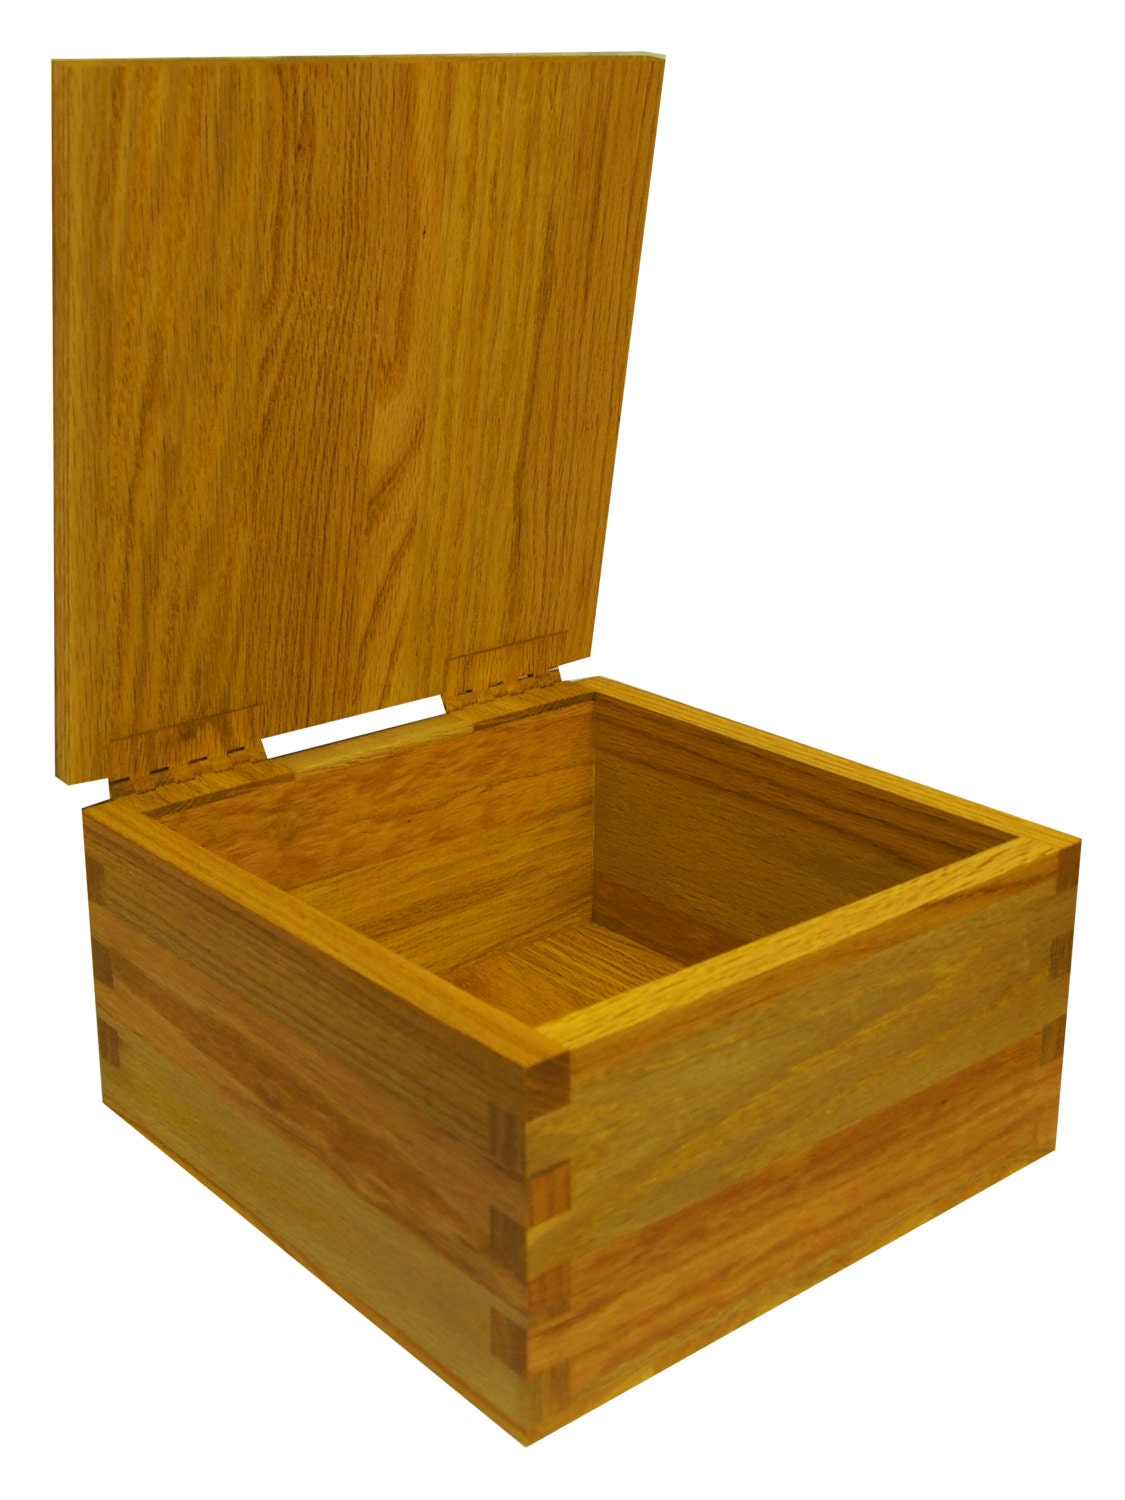 large hinged wooden keepsake memory storage box hinged lid. Black Bedroom Furniture Sets. Home Design Ideas